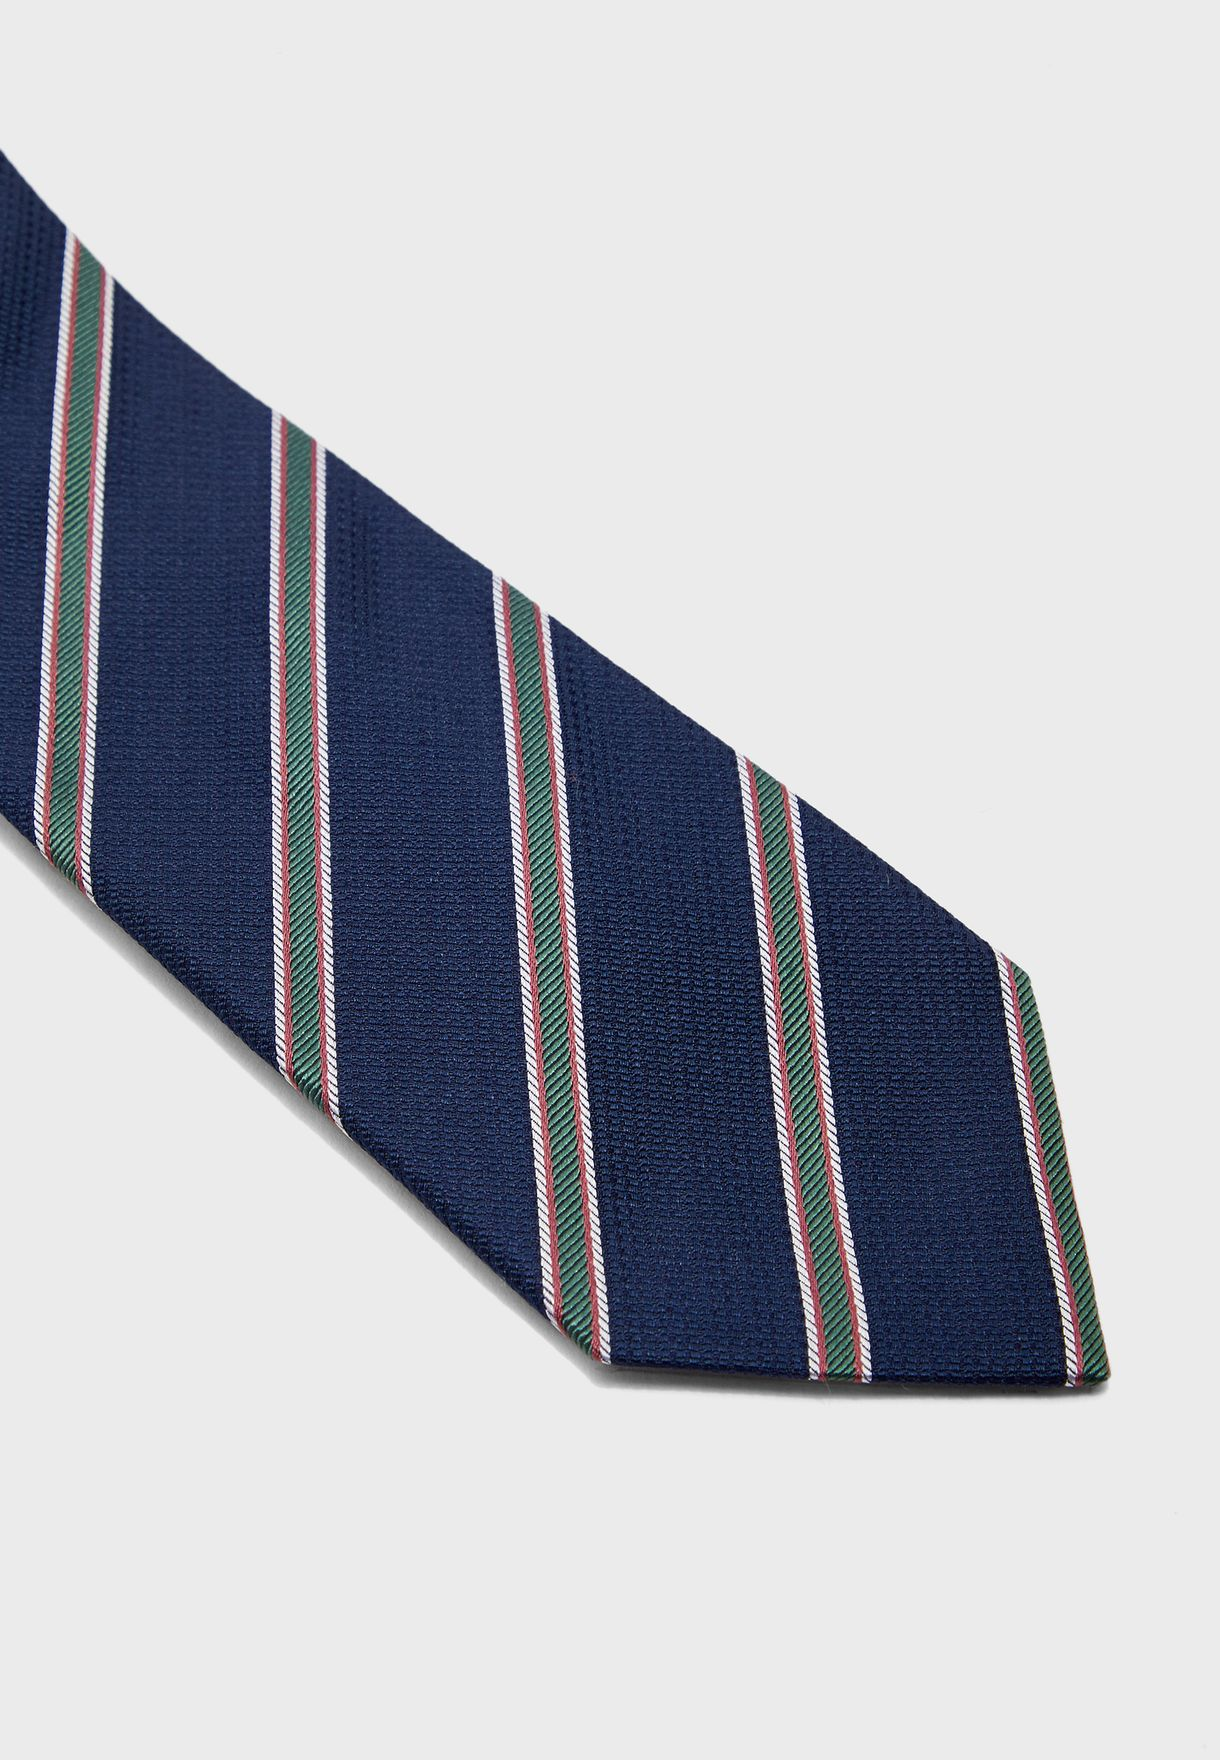 Three Colour Stripe Detail Tie